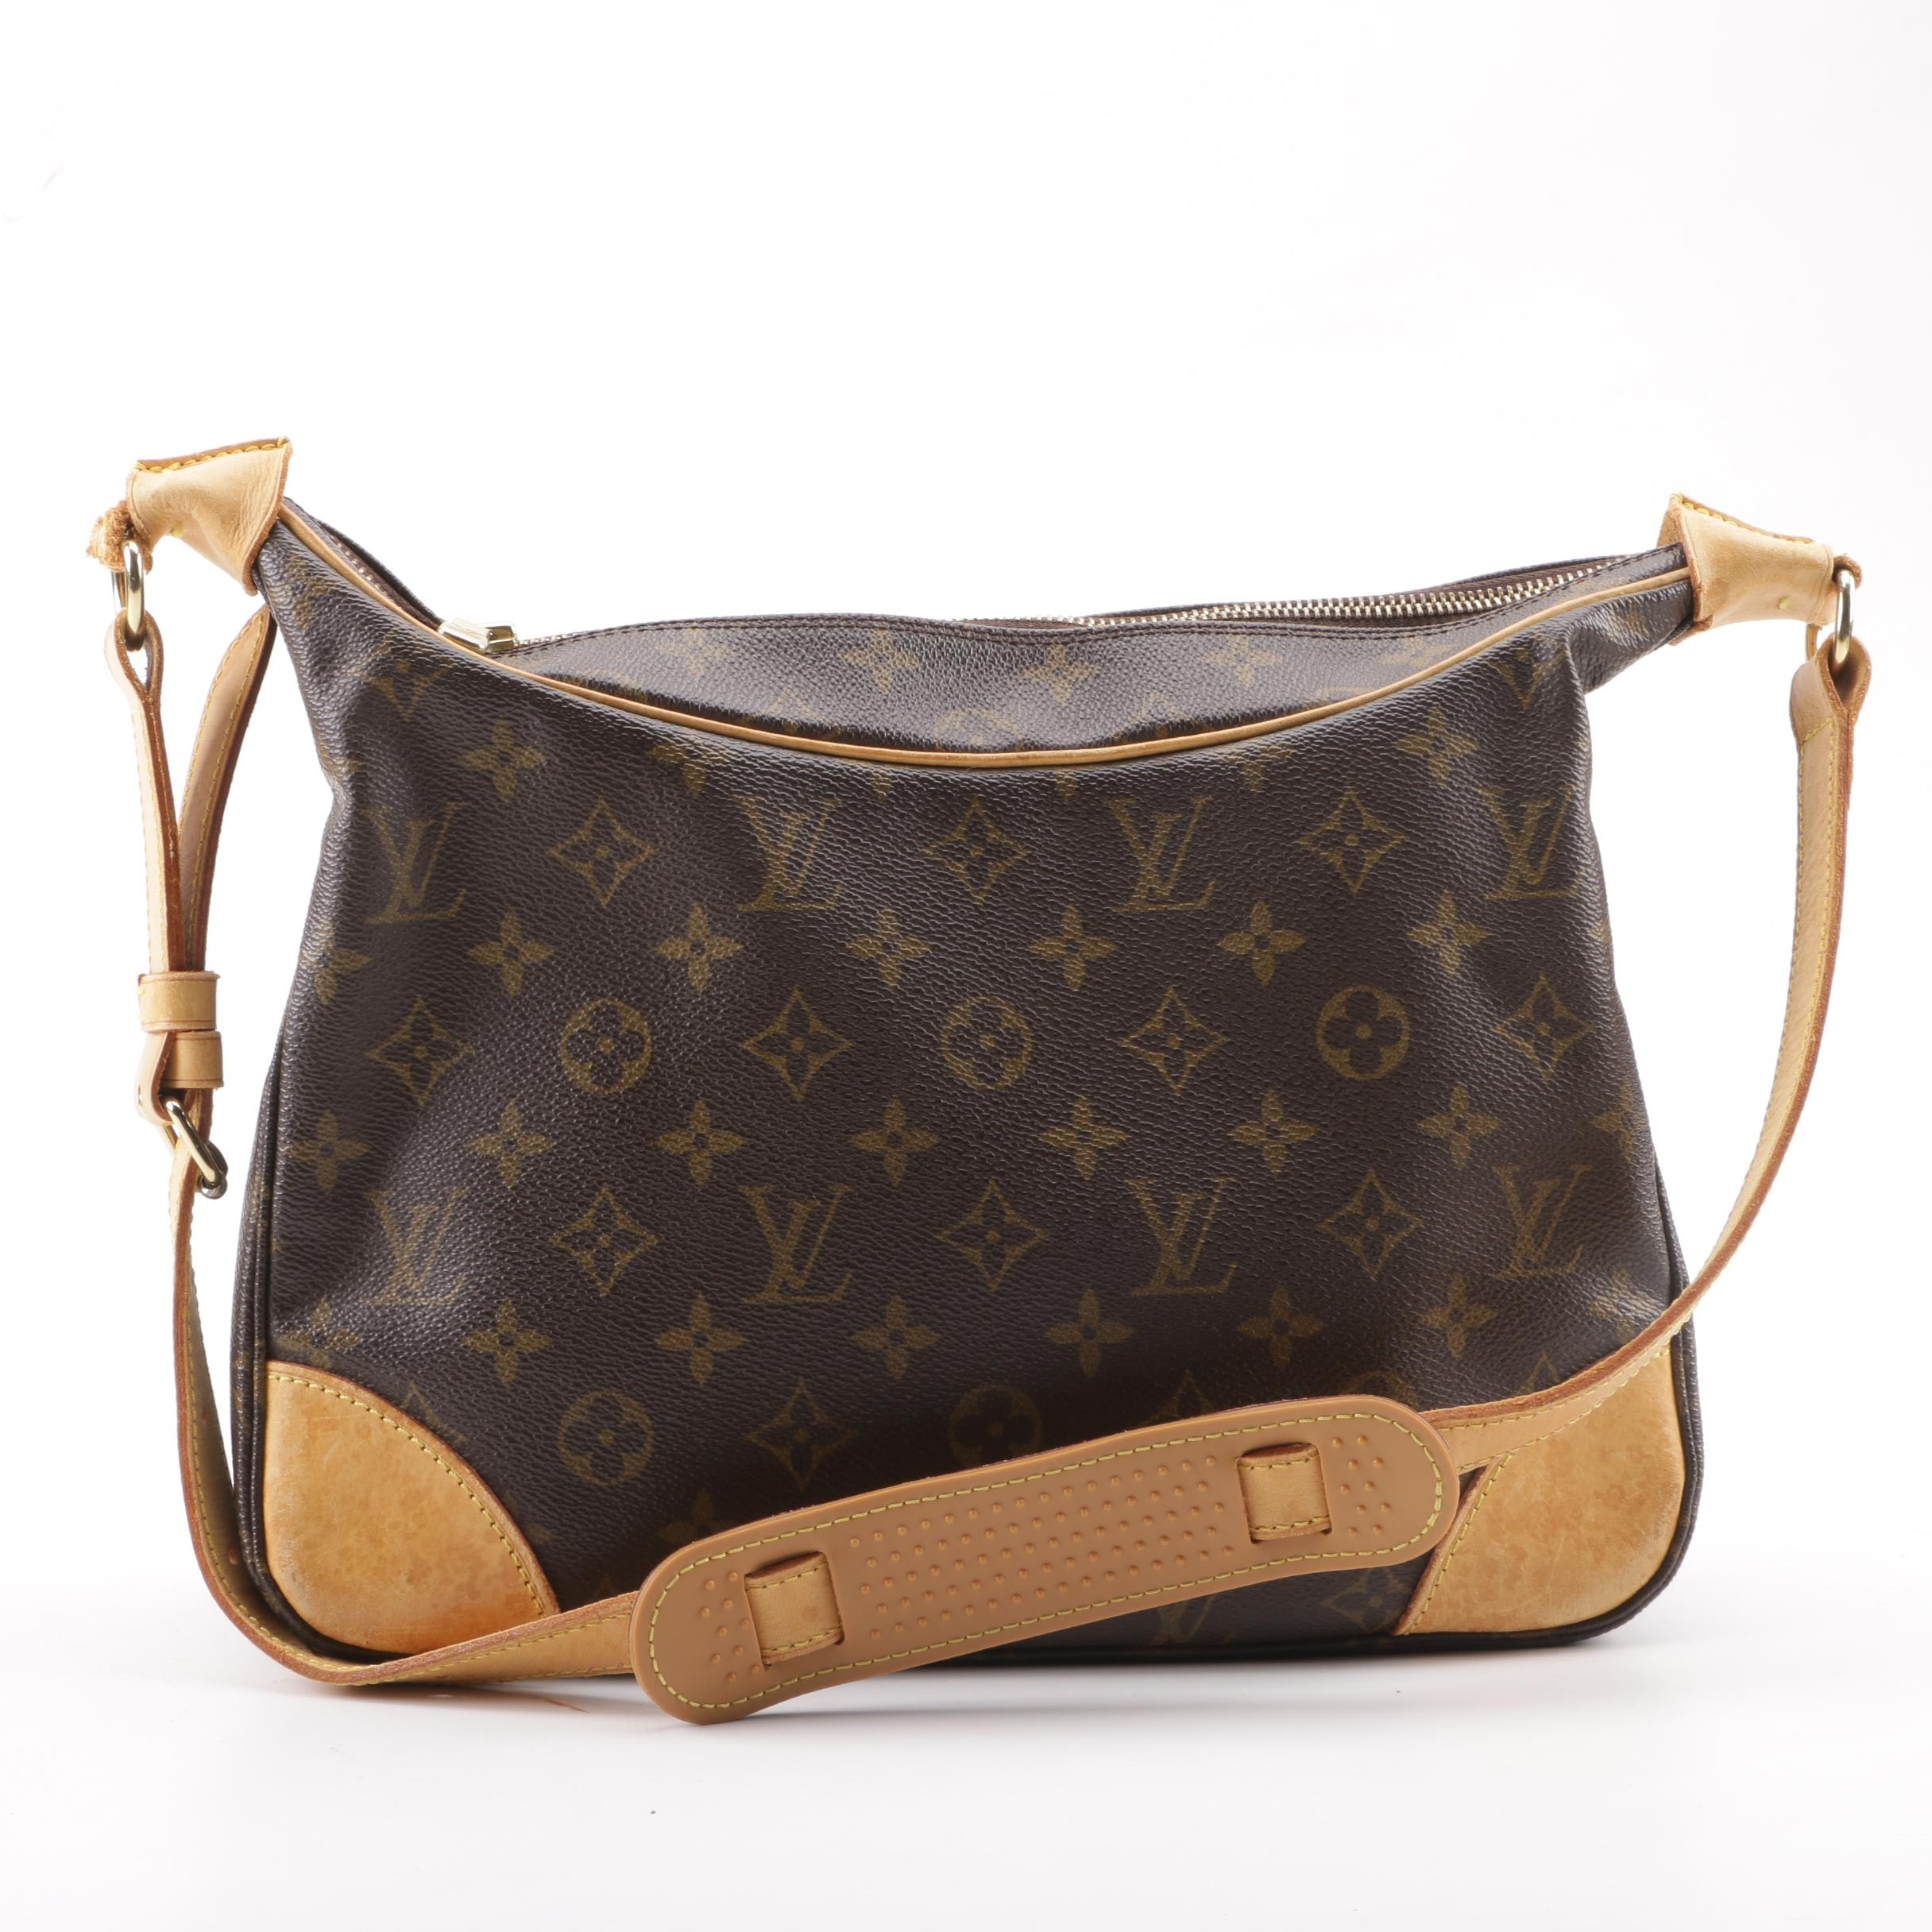 2000 Louis Vuitton Paris Monogram Canvas Boulogne 30 Shoulder Bag